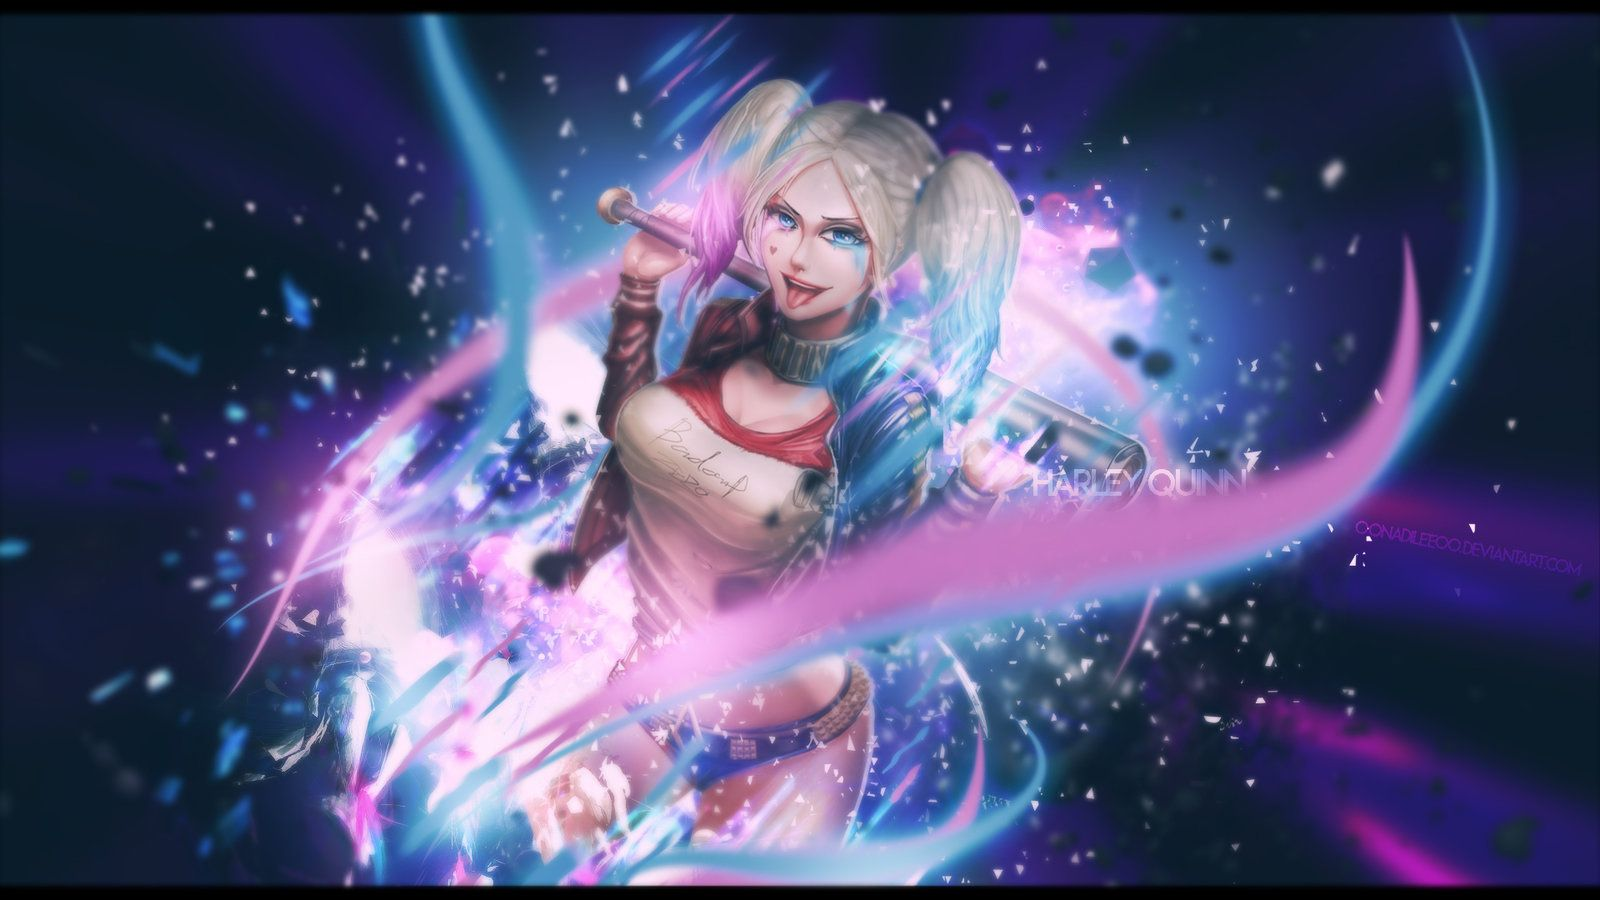 1600x900 Wallpaper | Suicid Squad | Harley Quinn by oOnadileeOo on DeviantArt